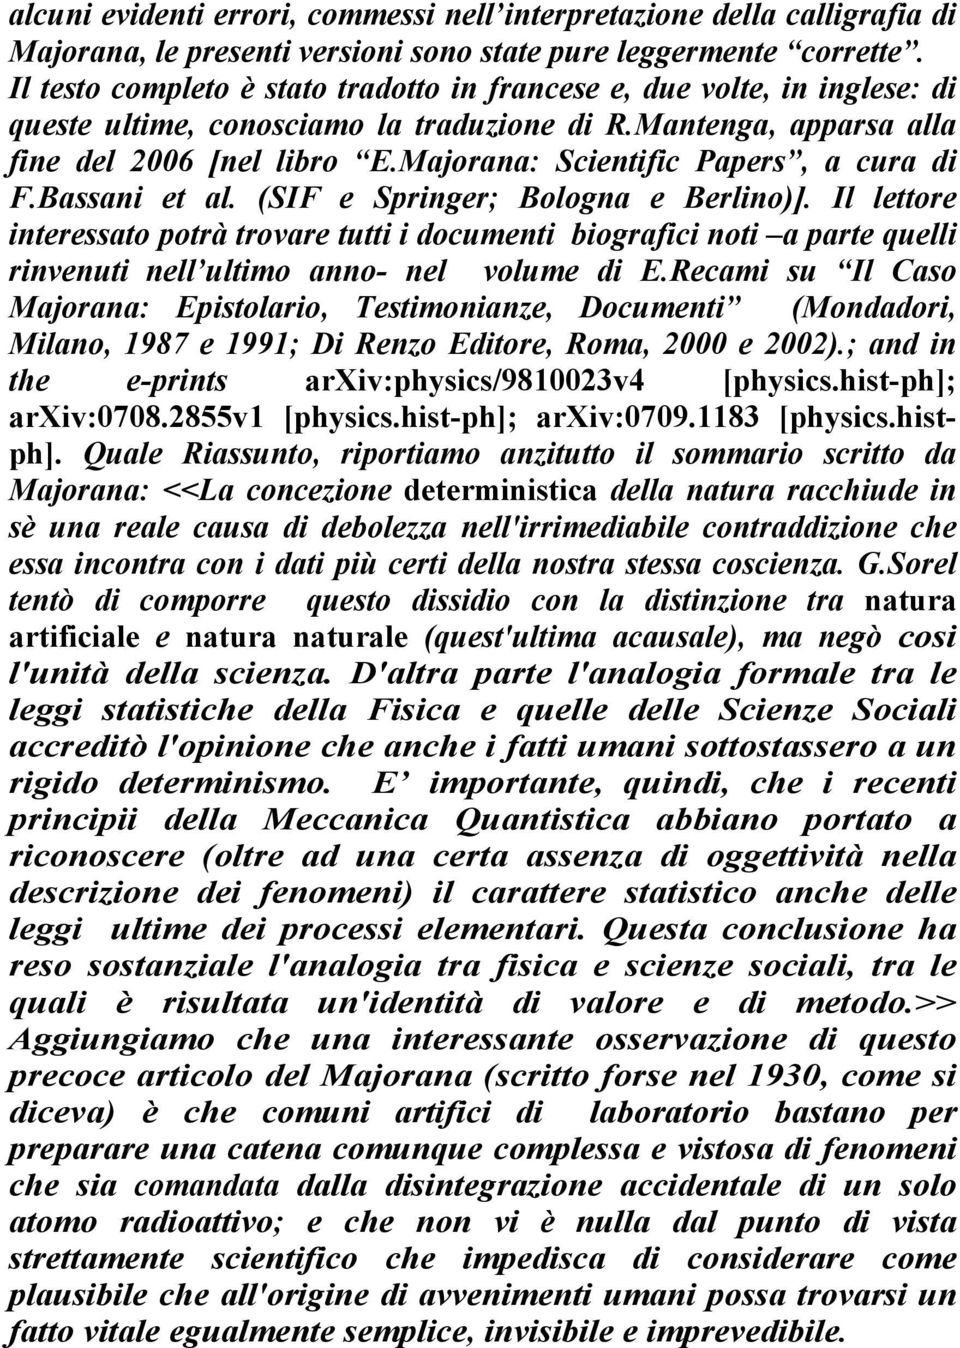 Majorana: Scientific Papers, a cura di F.Bassani et al. (SIF e Springer; Bologna e Berlino)].